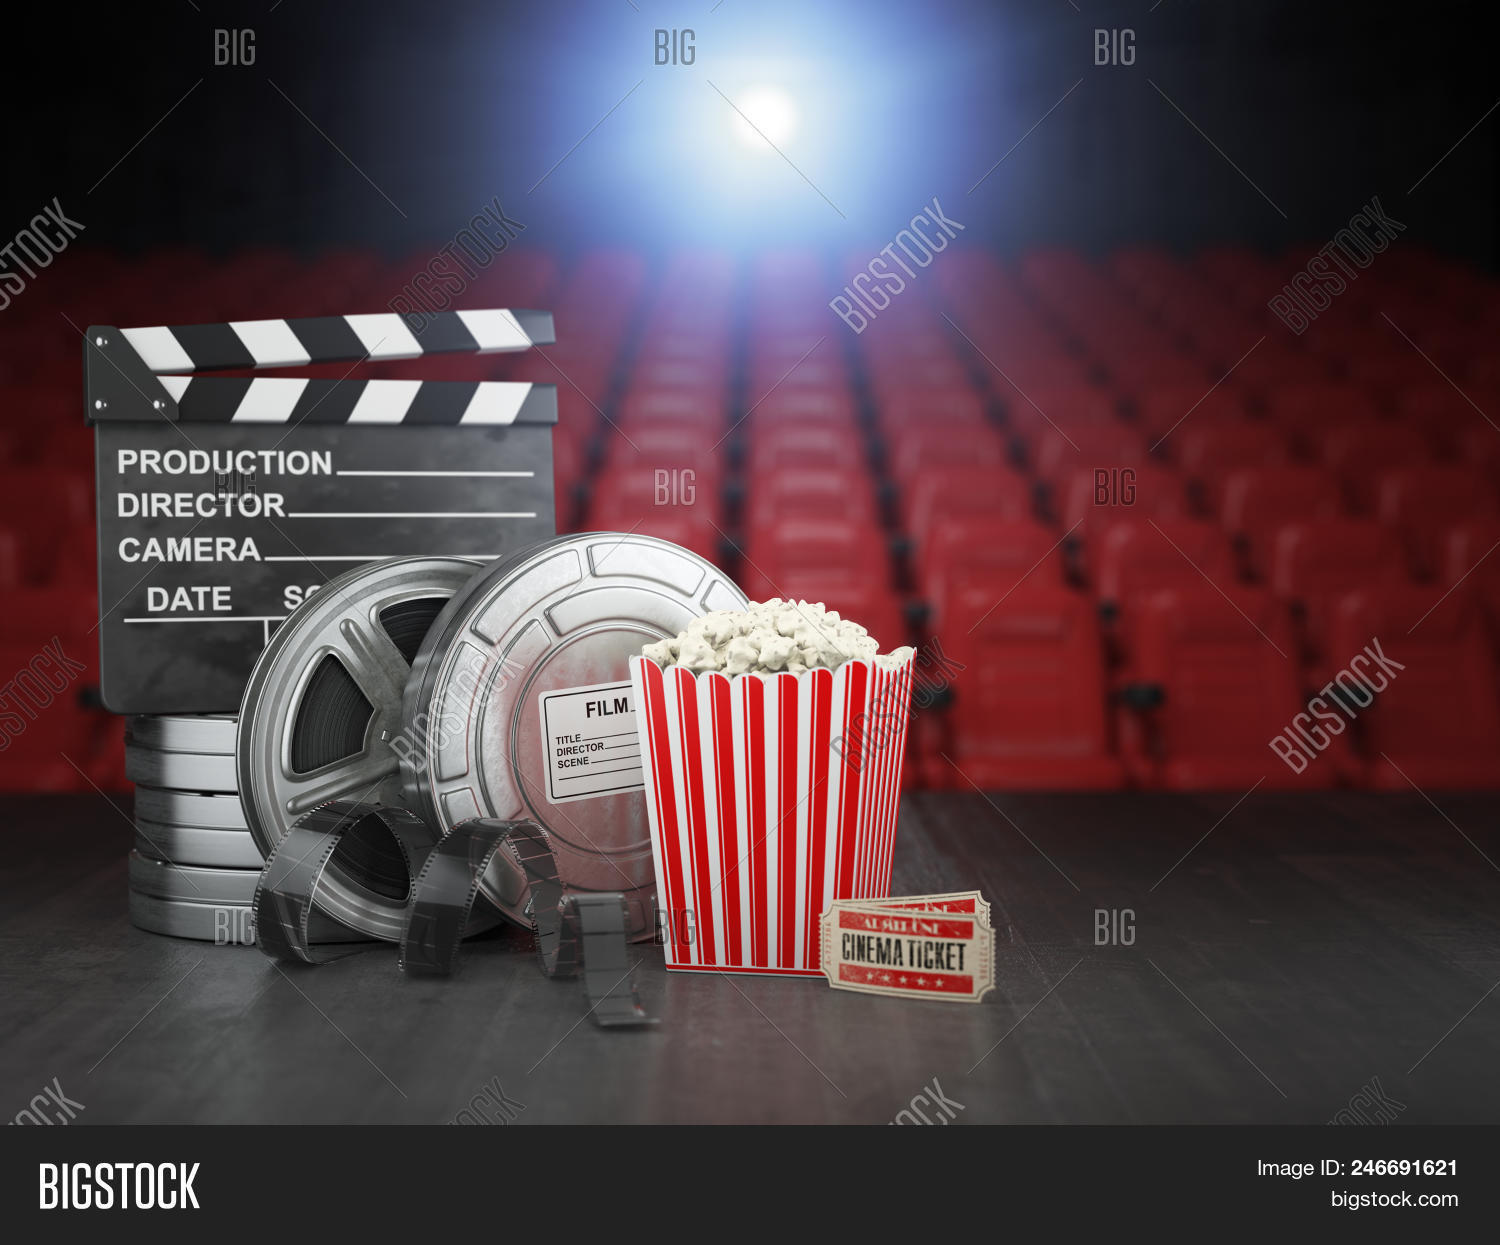 Picture of: Cinema Movie Home Image Photo Free Trial Bigstock